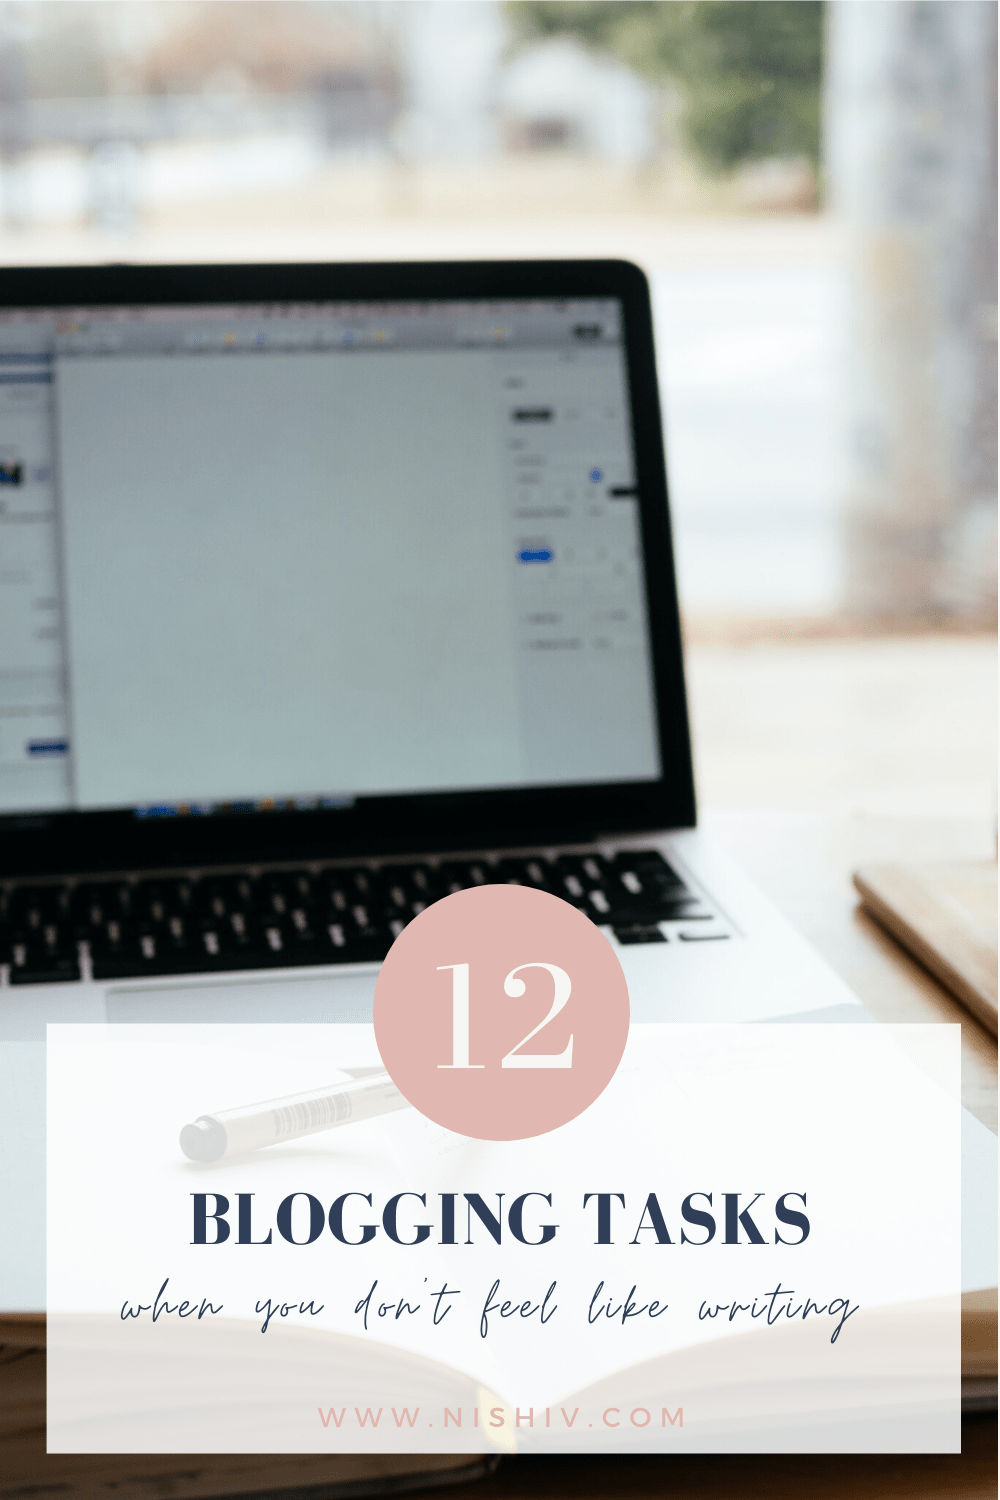 Pinterest image for 12 Blogging Tasks For When You Don't Feel Like Writing